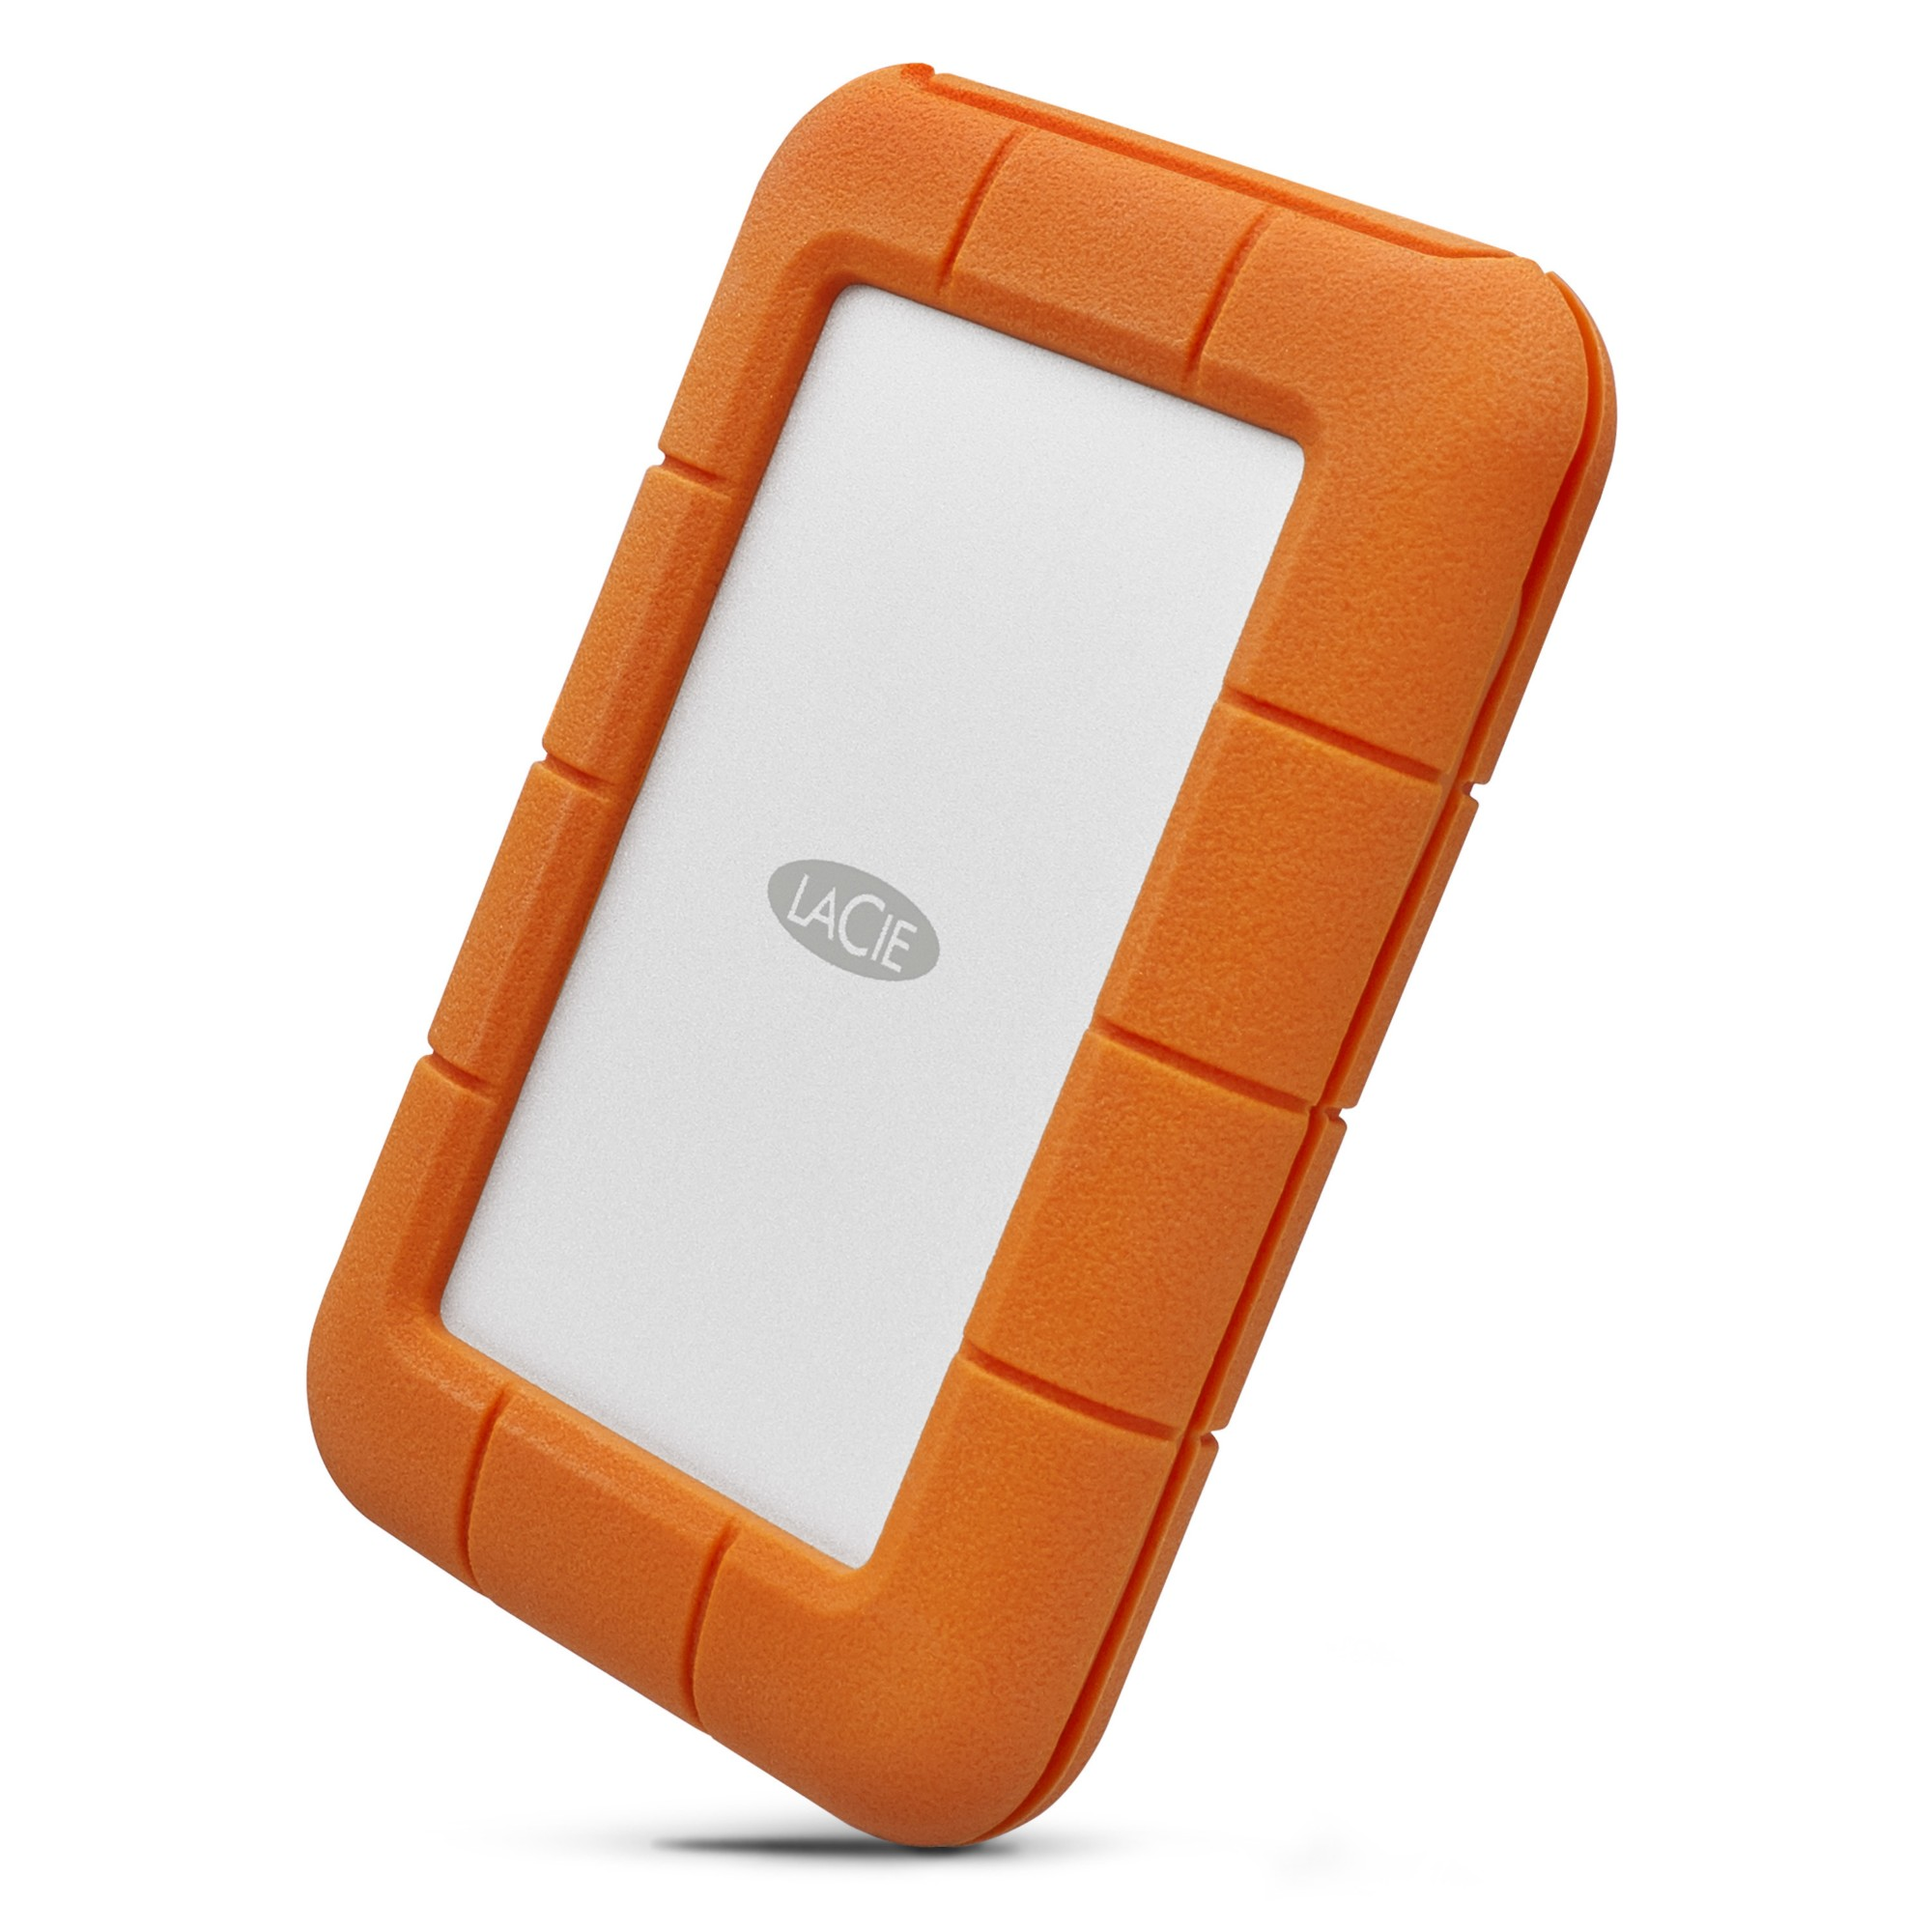 LACIE STFR5000800 RUGGED USB-C 5000GB GREY, YELLOW EXTERNAL HARD DRIVE